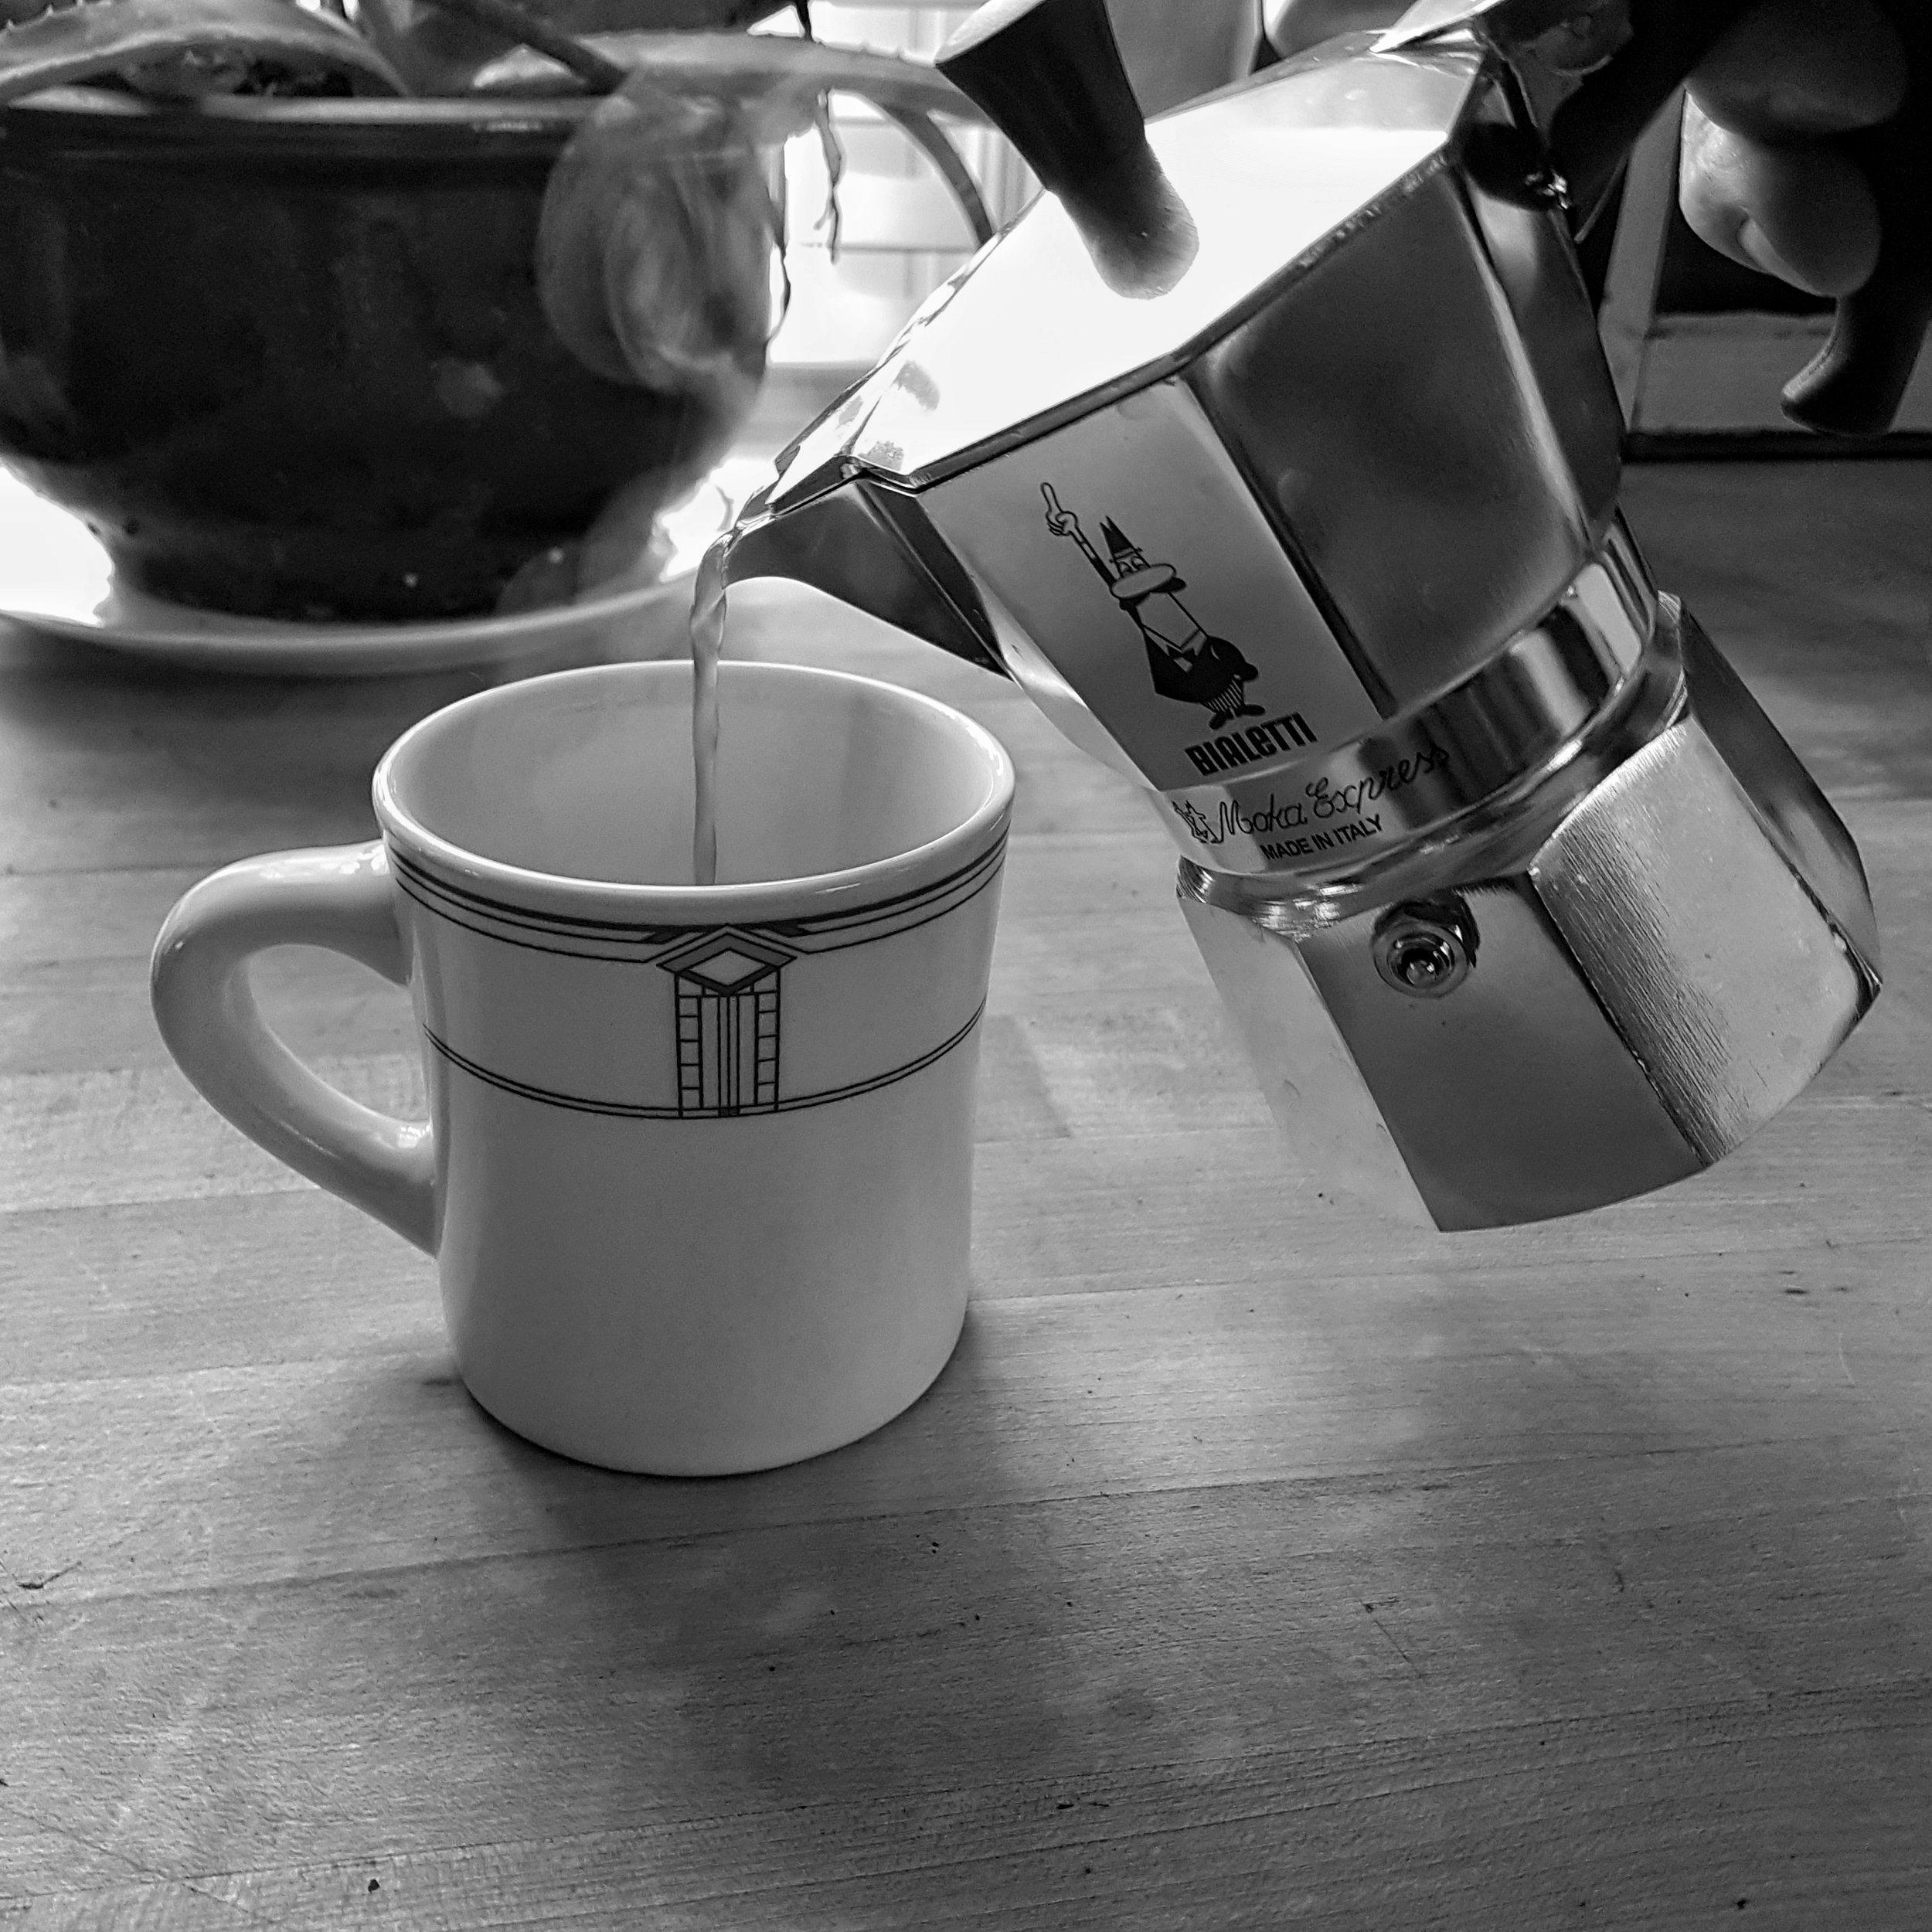 A moka pot is poured into a coffee cup